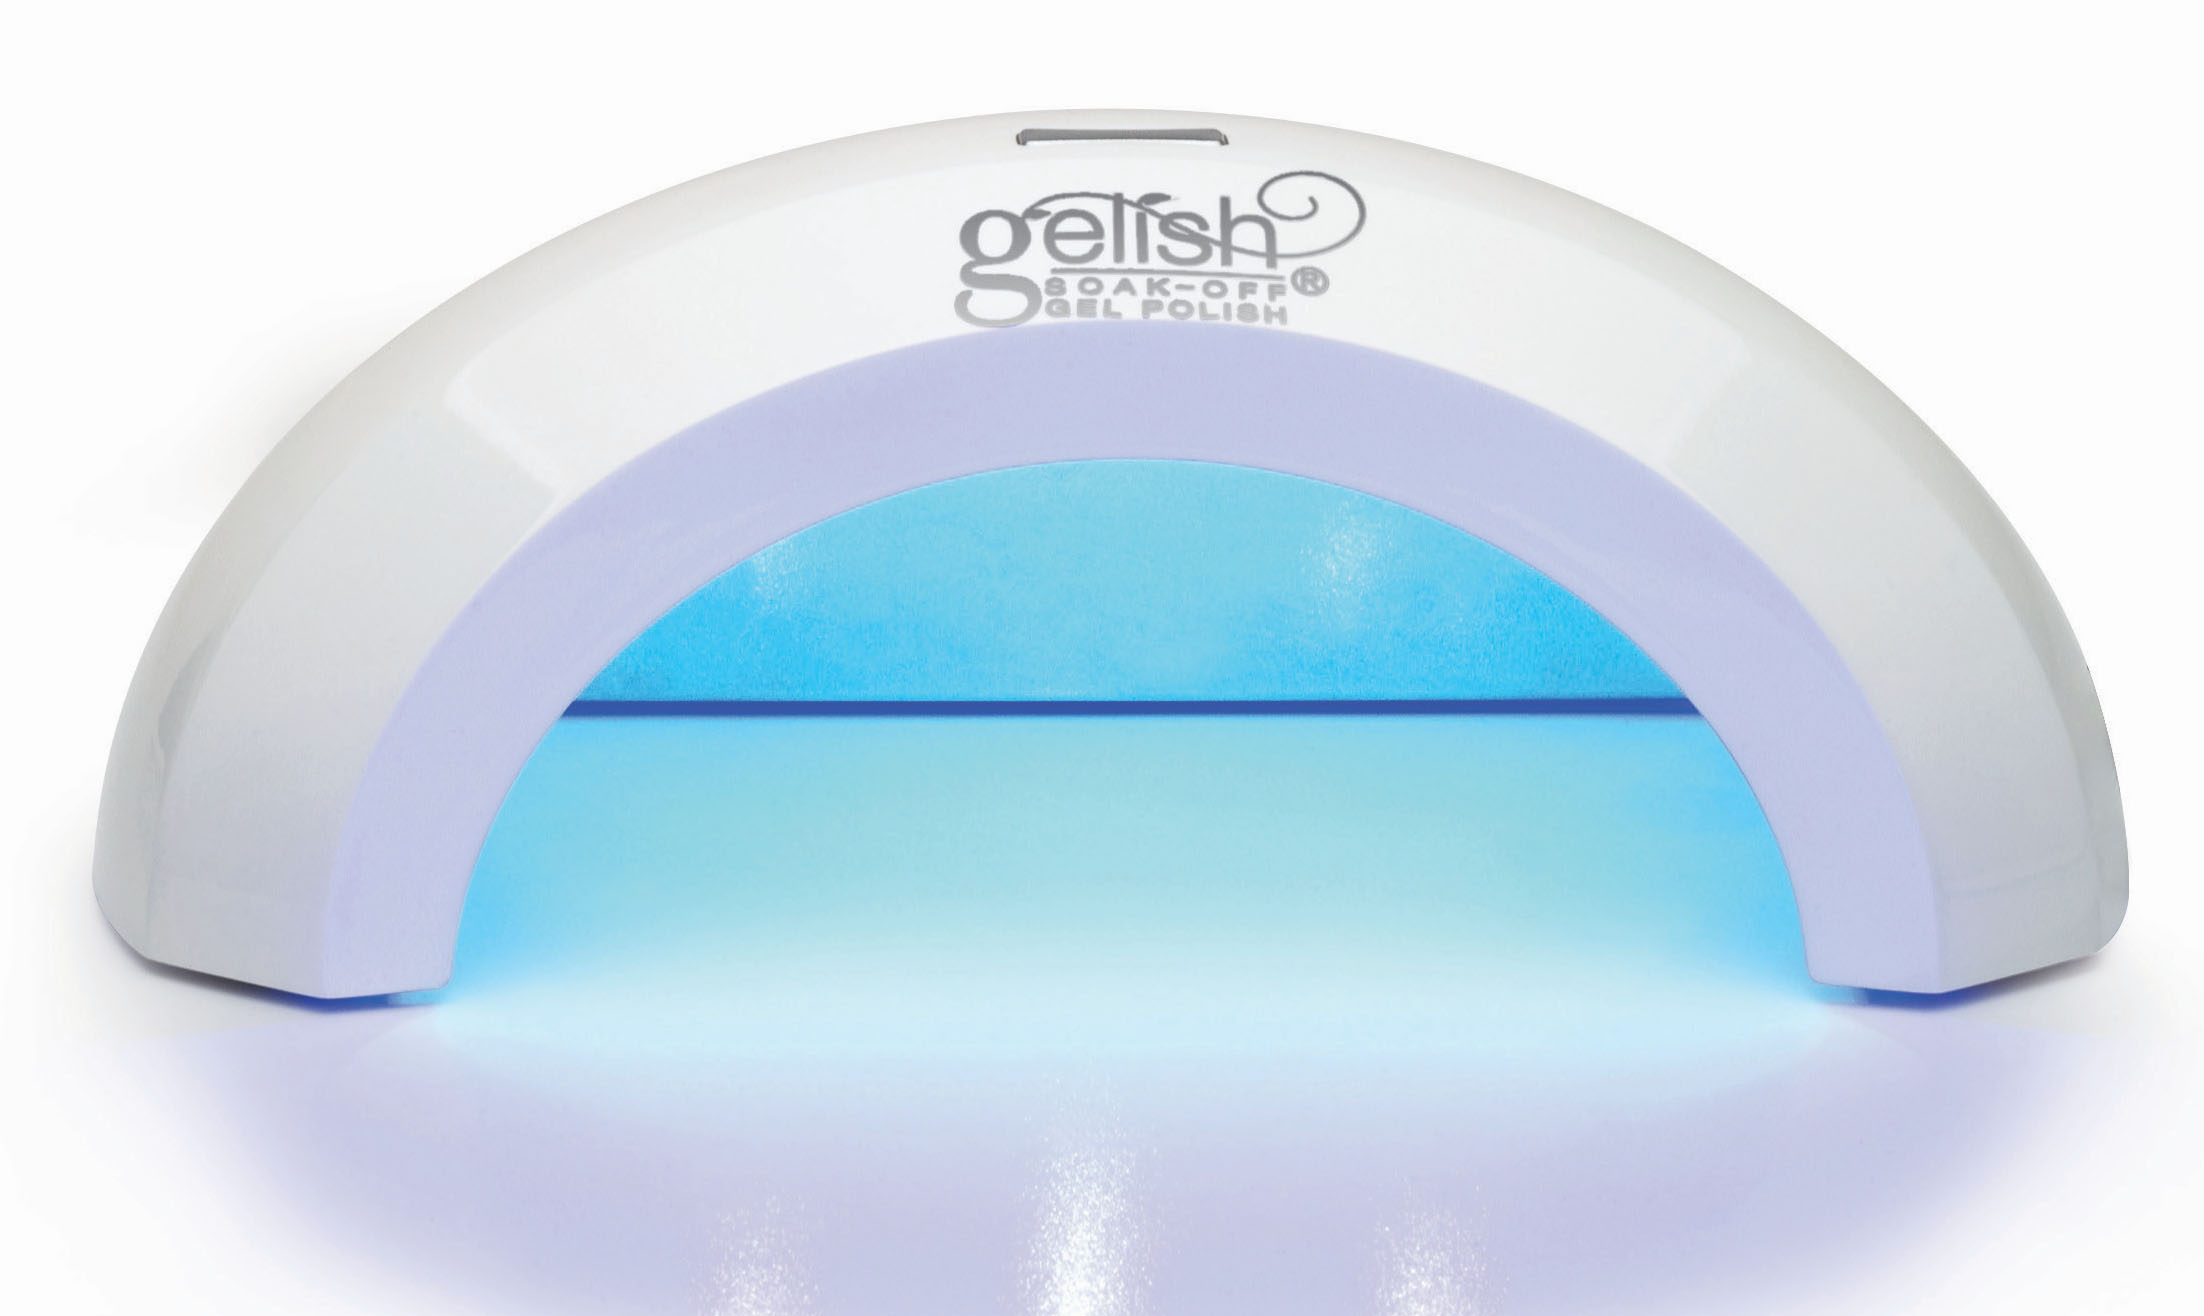 Gelish Mini Pro 45 Second LED Curing Gel Soak Nail Polish Salon Light Lamp